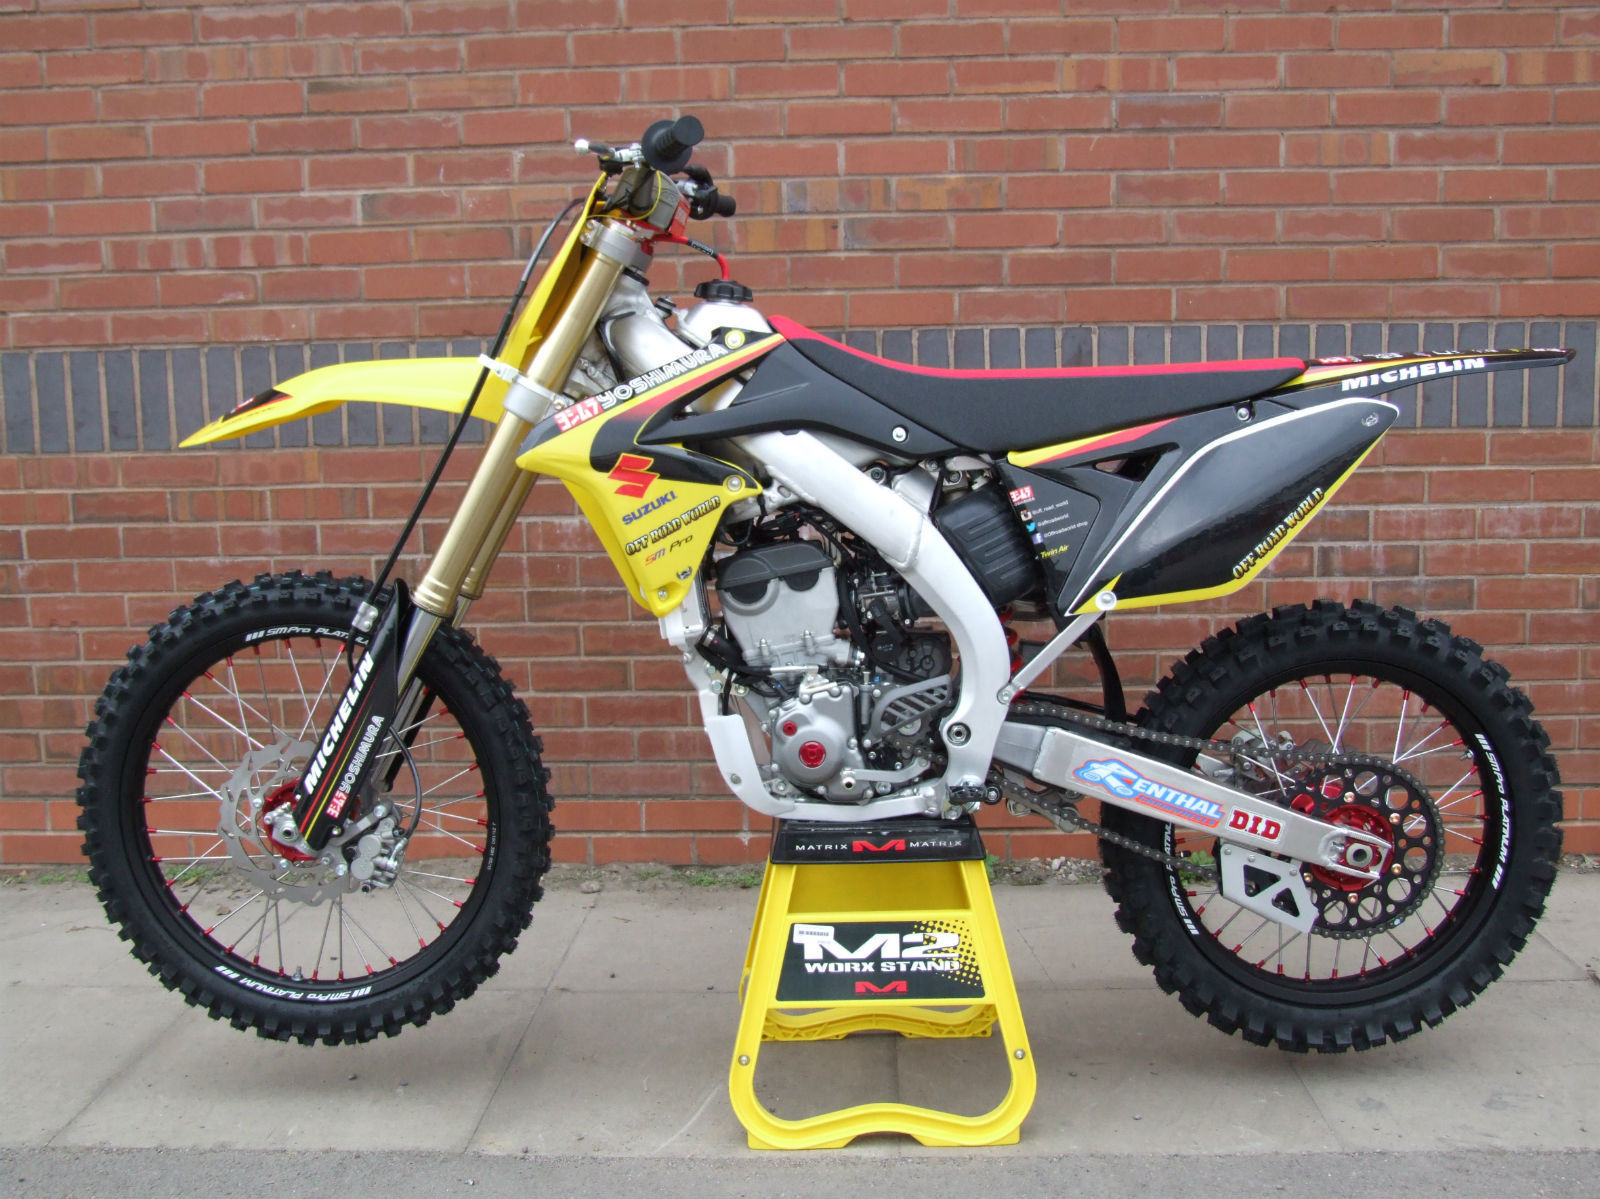 suzuki rmz rm z 250 2015 yoshimura edition mx off road. Black Bedroom Furniture Sets. Home Design Ideas